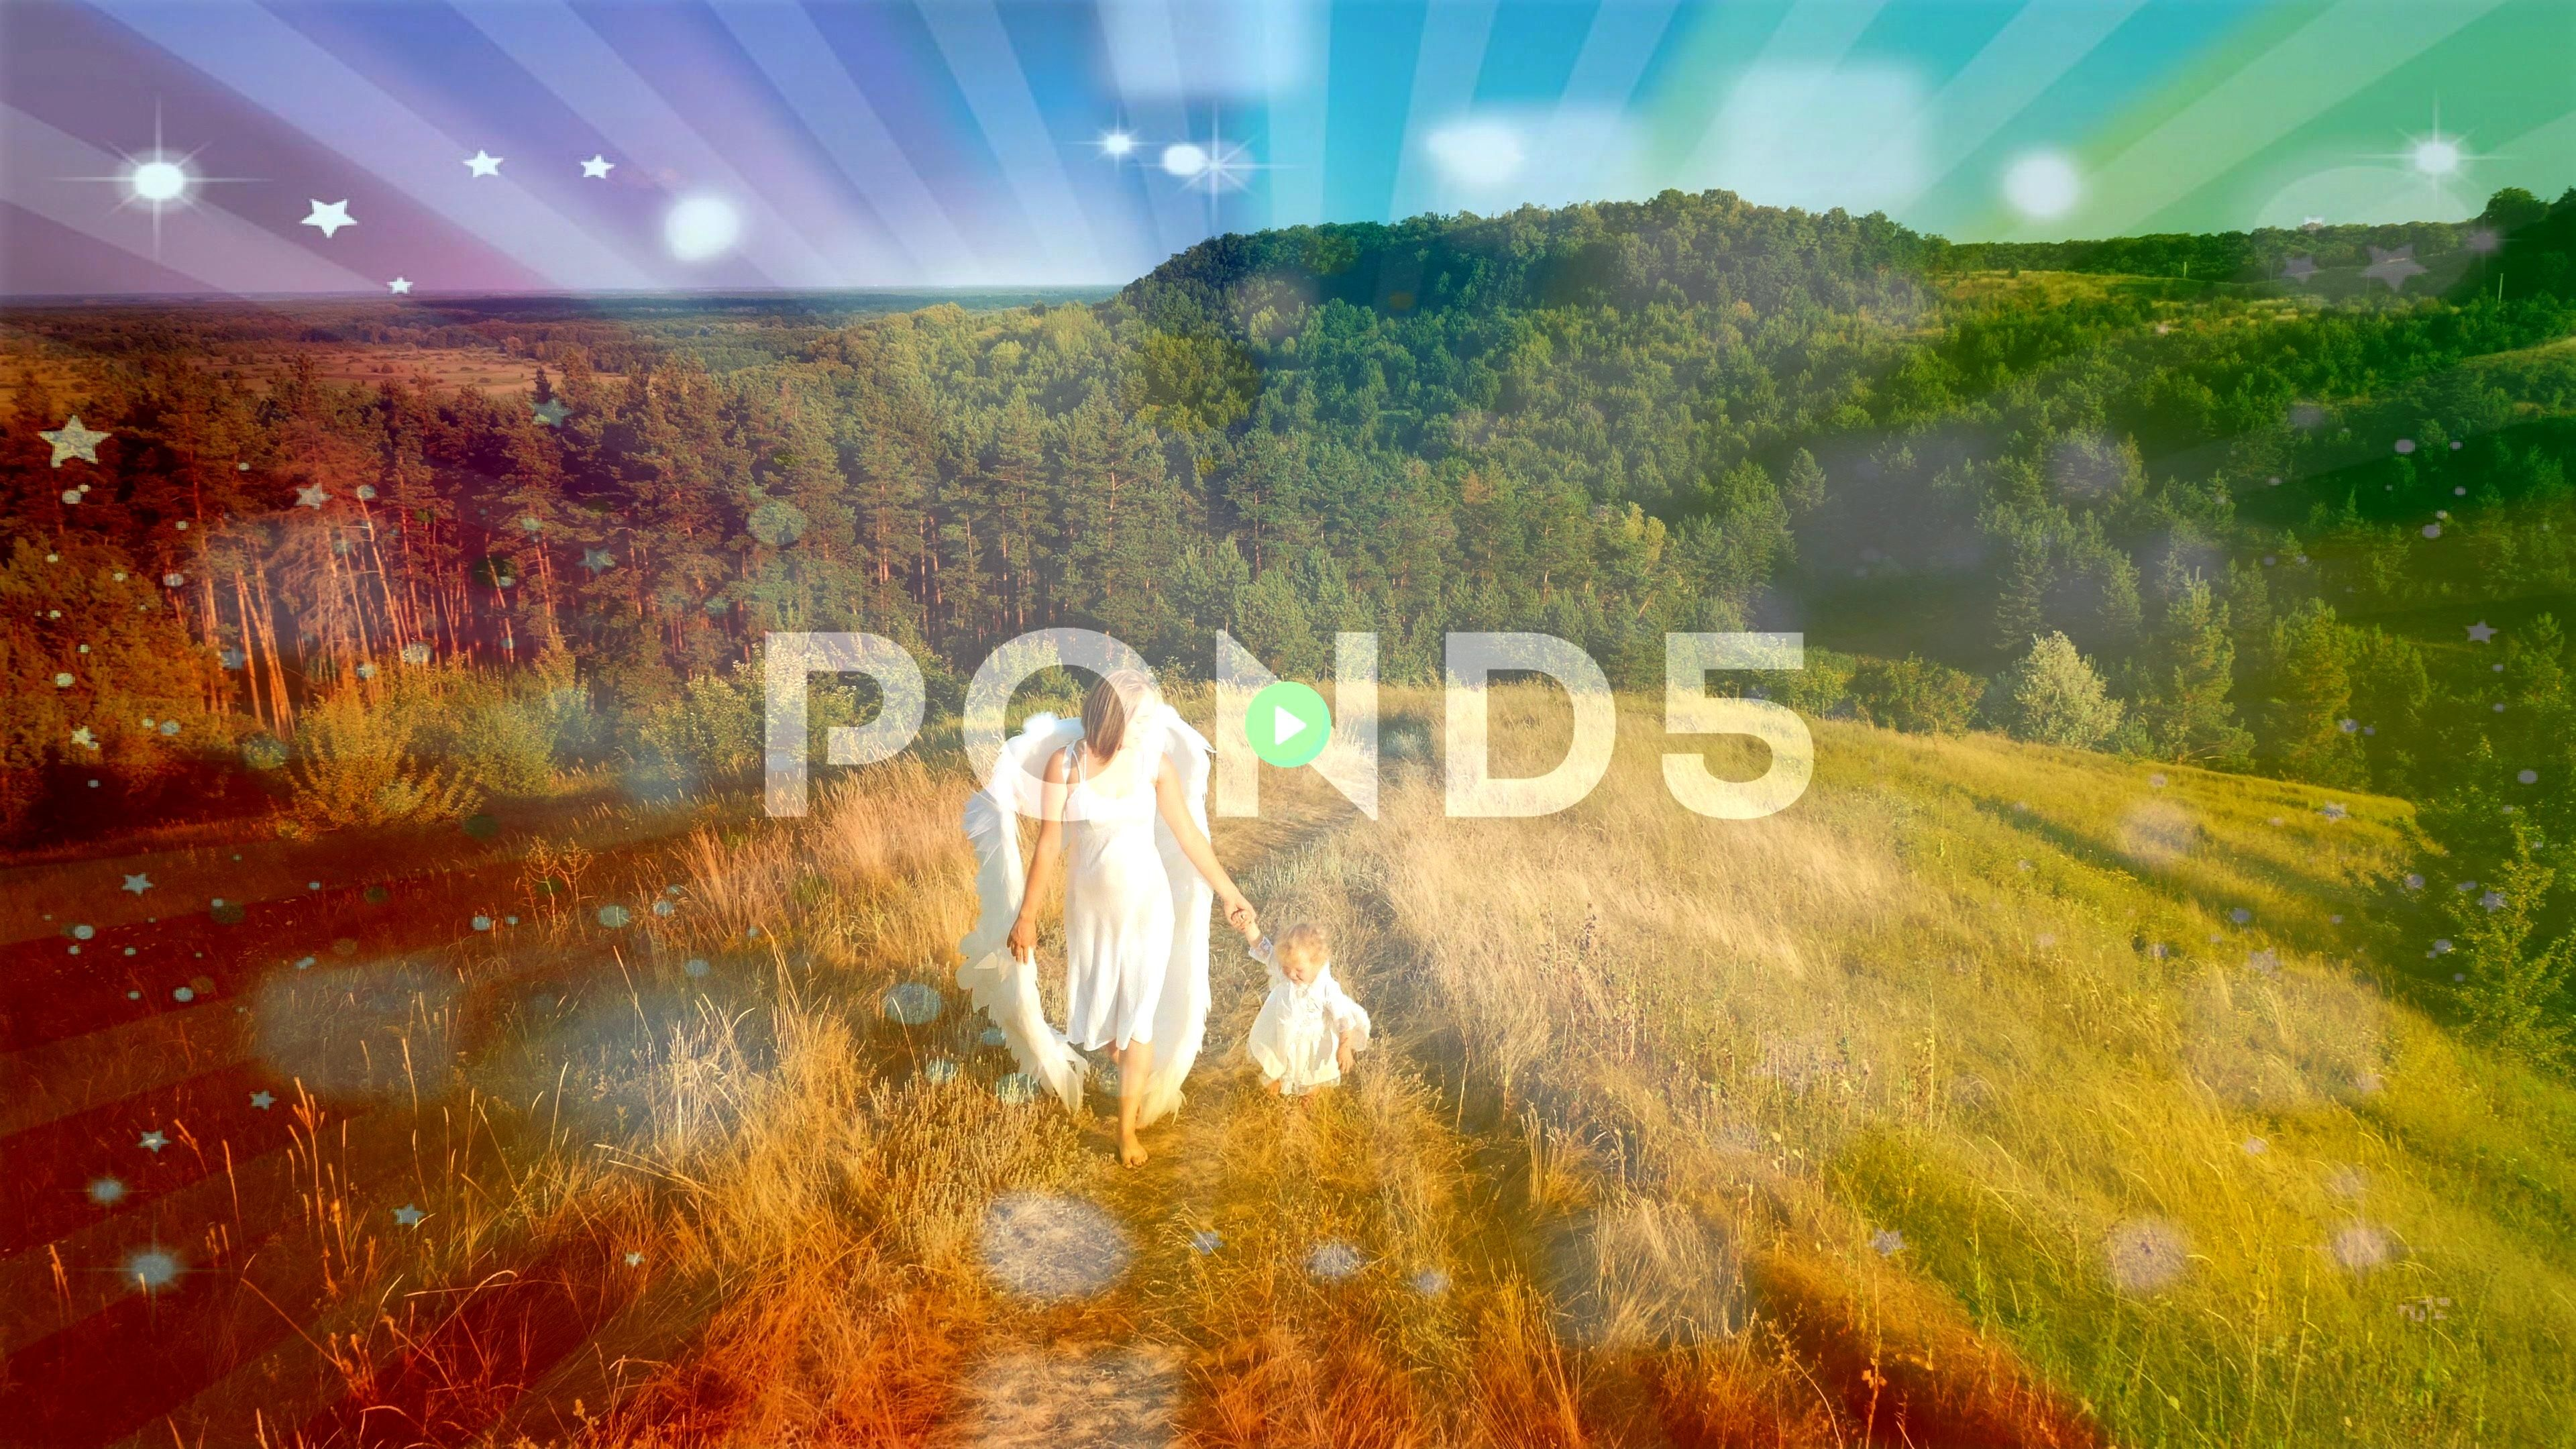 with child dressed as angels walk in nature Stock Footage dressedangelsMotherchildMother with child dressed as angels walk in nature Stock Footage dressedangelsMotherchil...